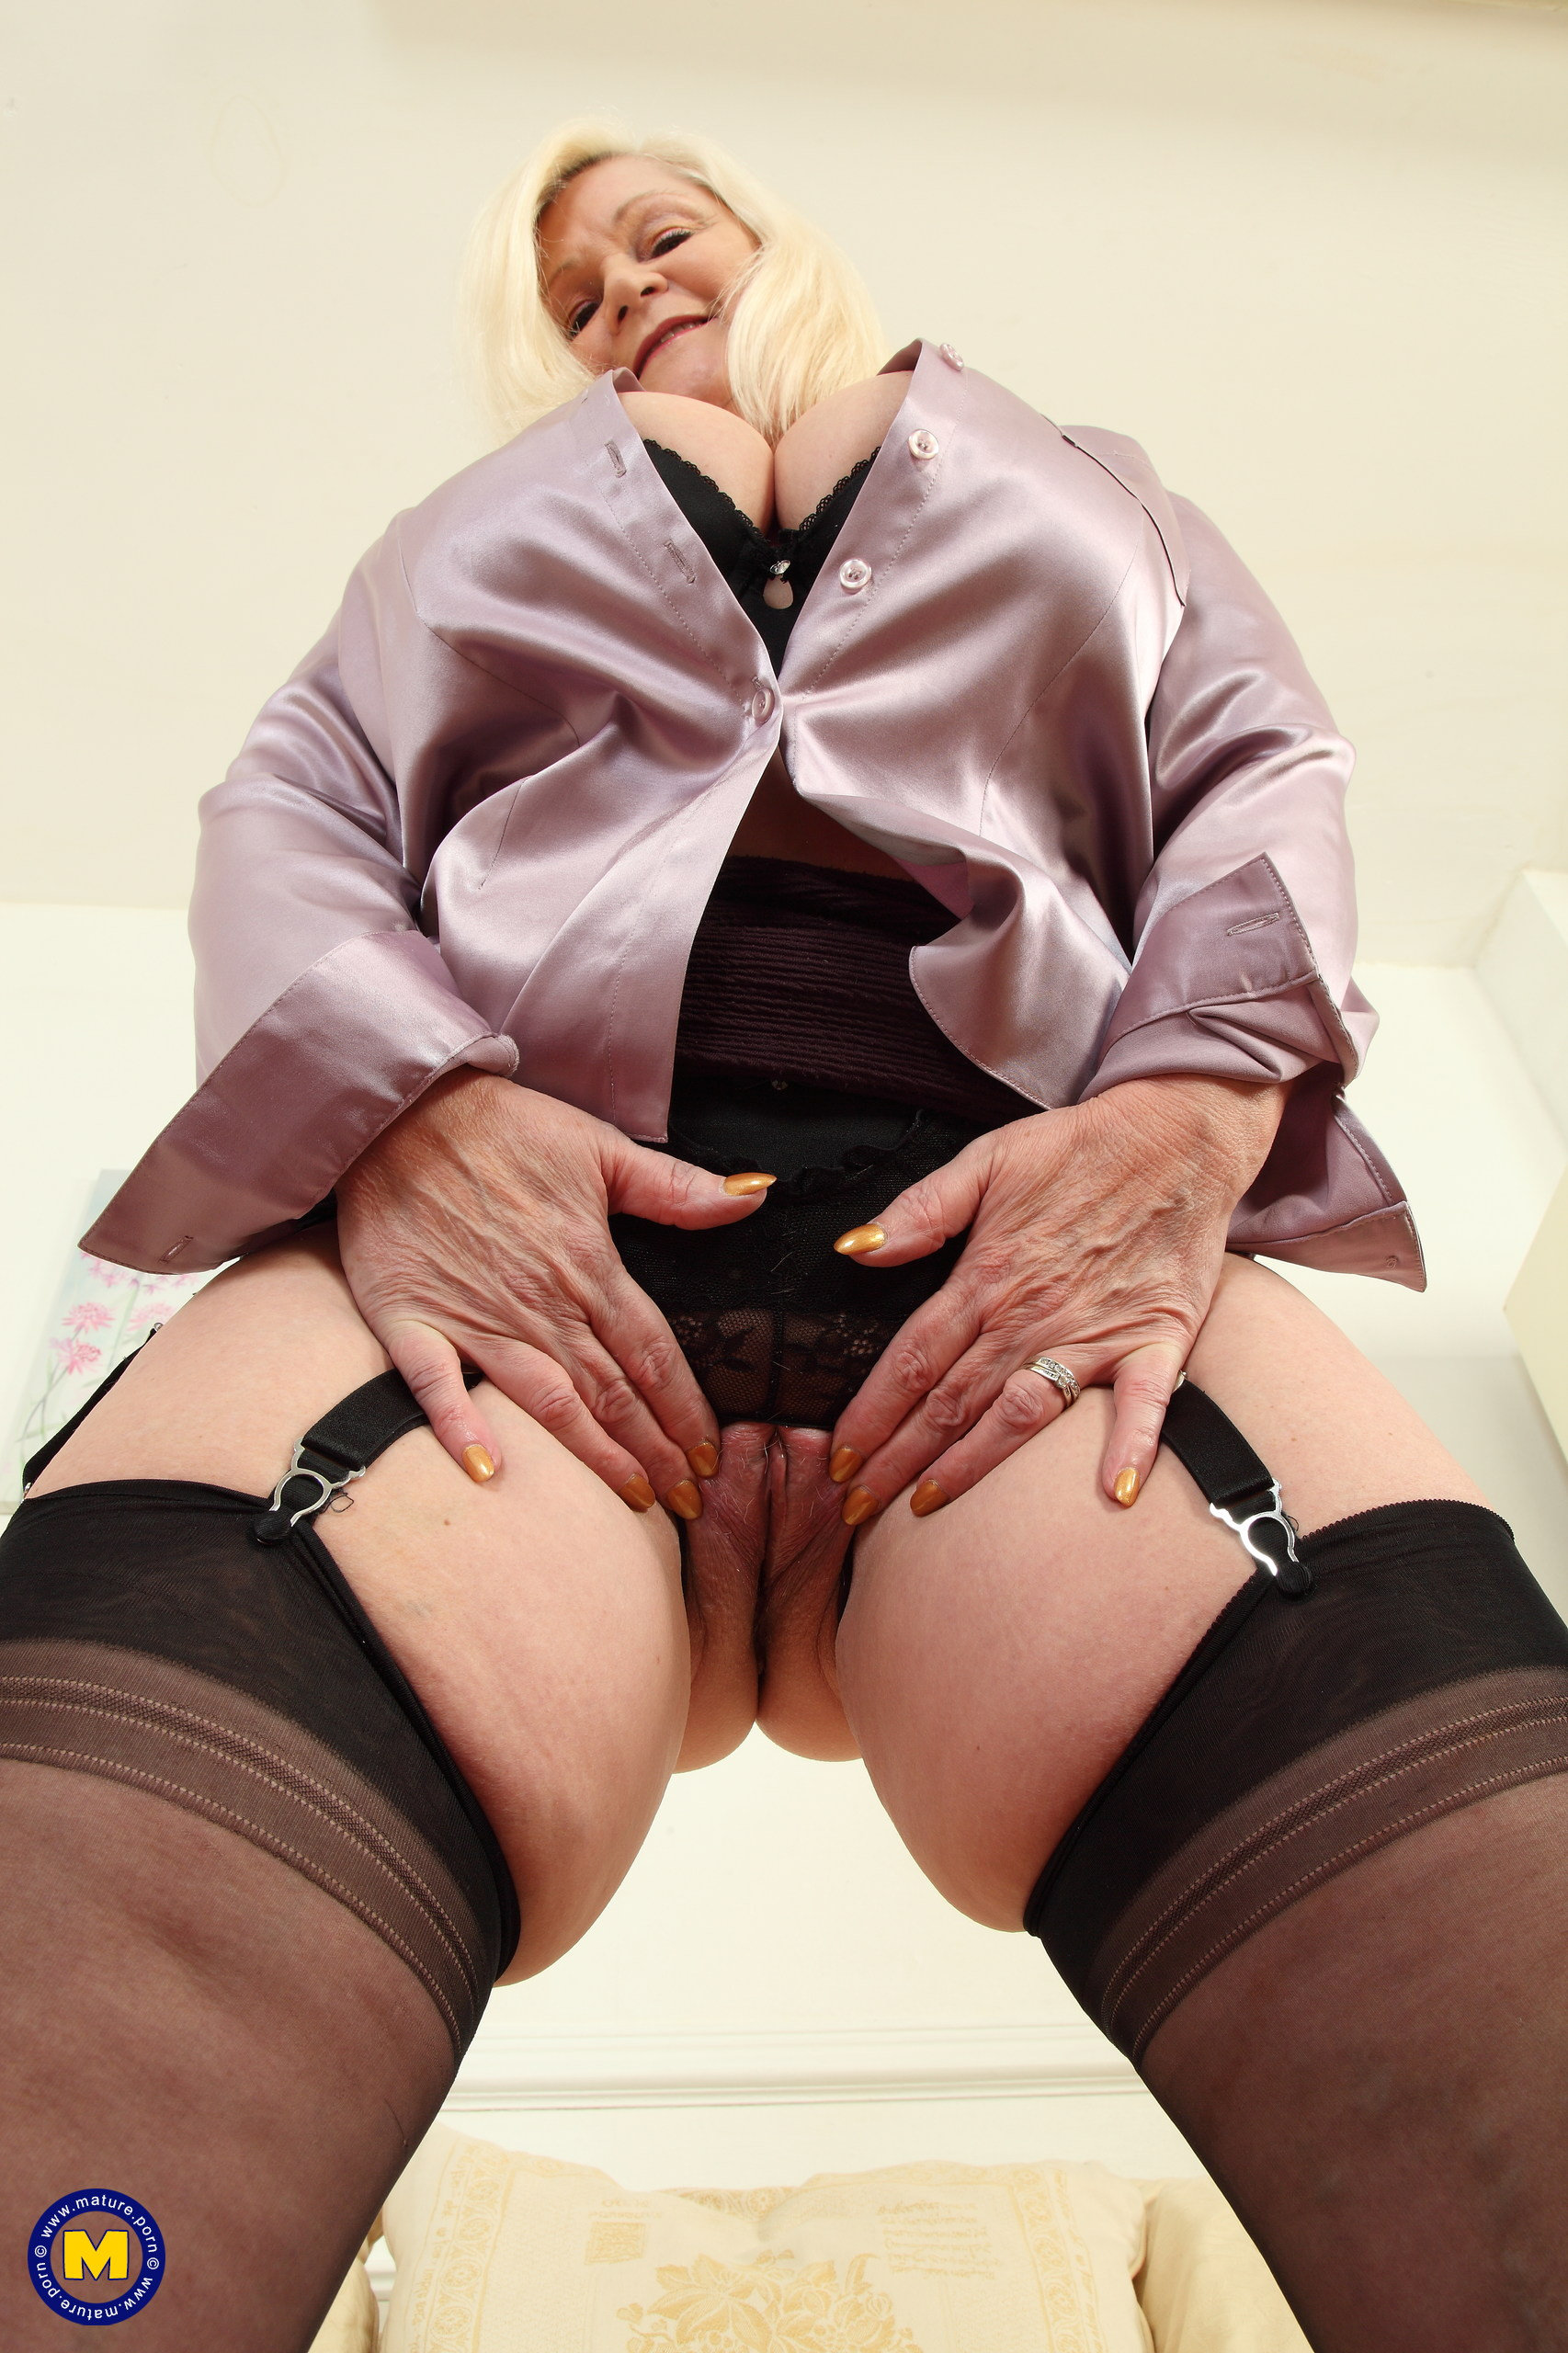 Hot granny lacey starr being double stuffed 8